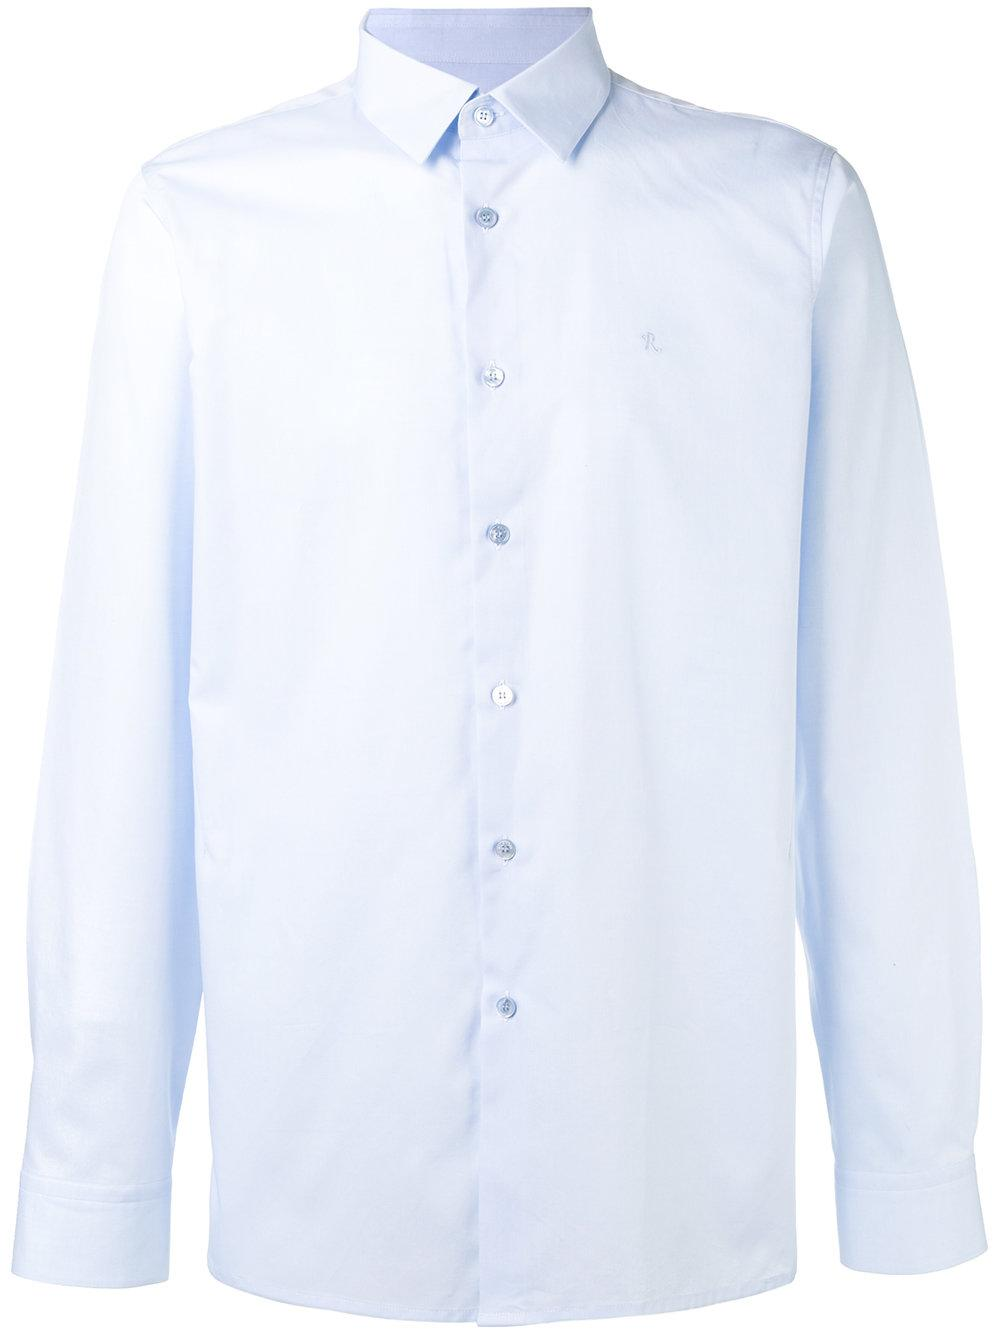 Raf simons button up logo shirt in blue for men lyst for Shirt tales brunswick ga